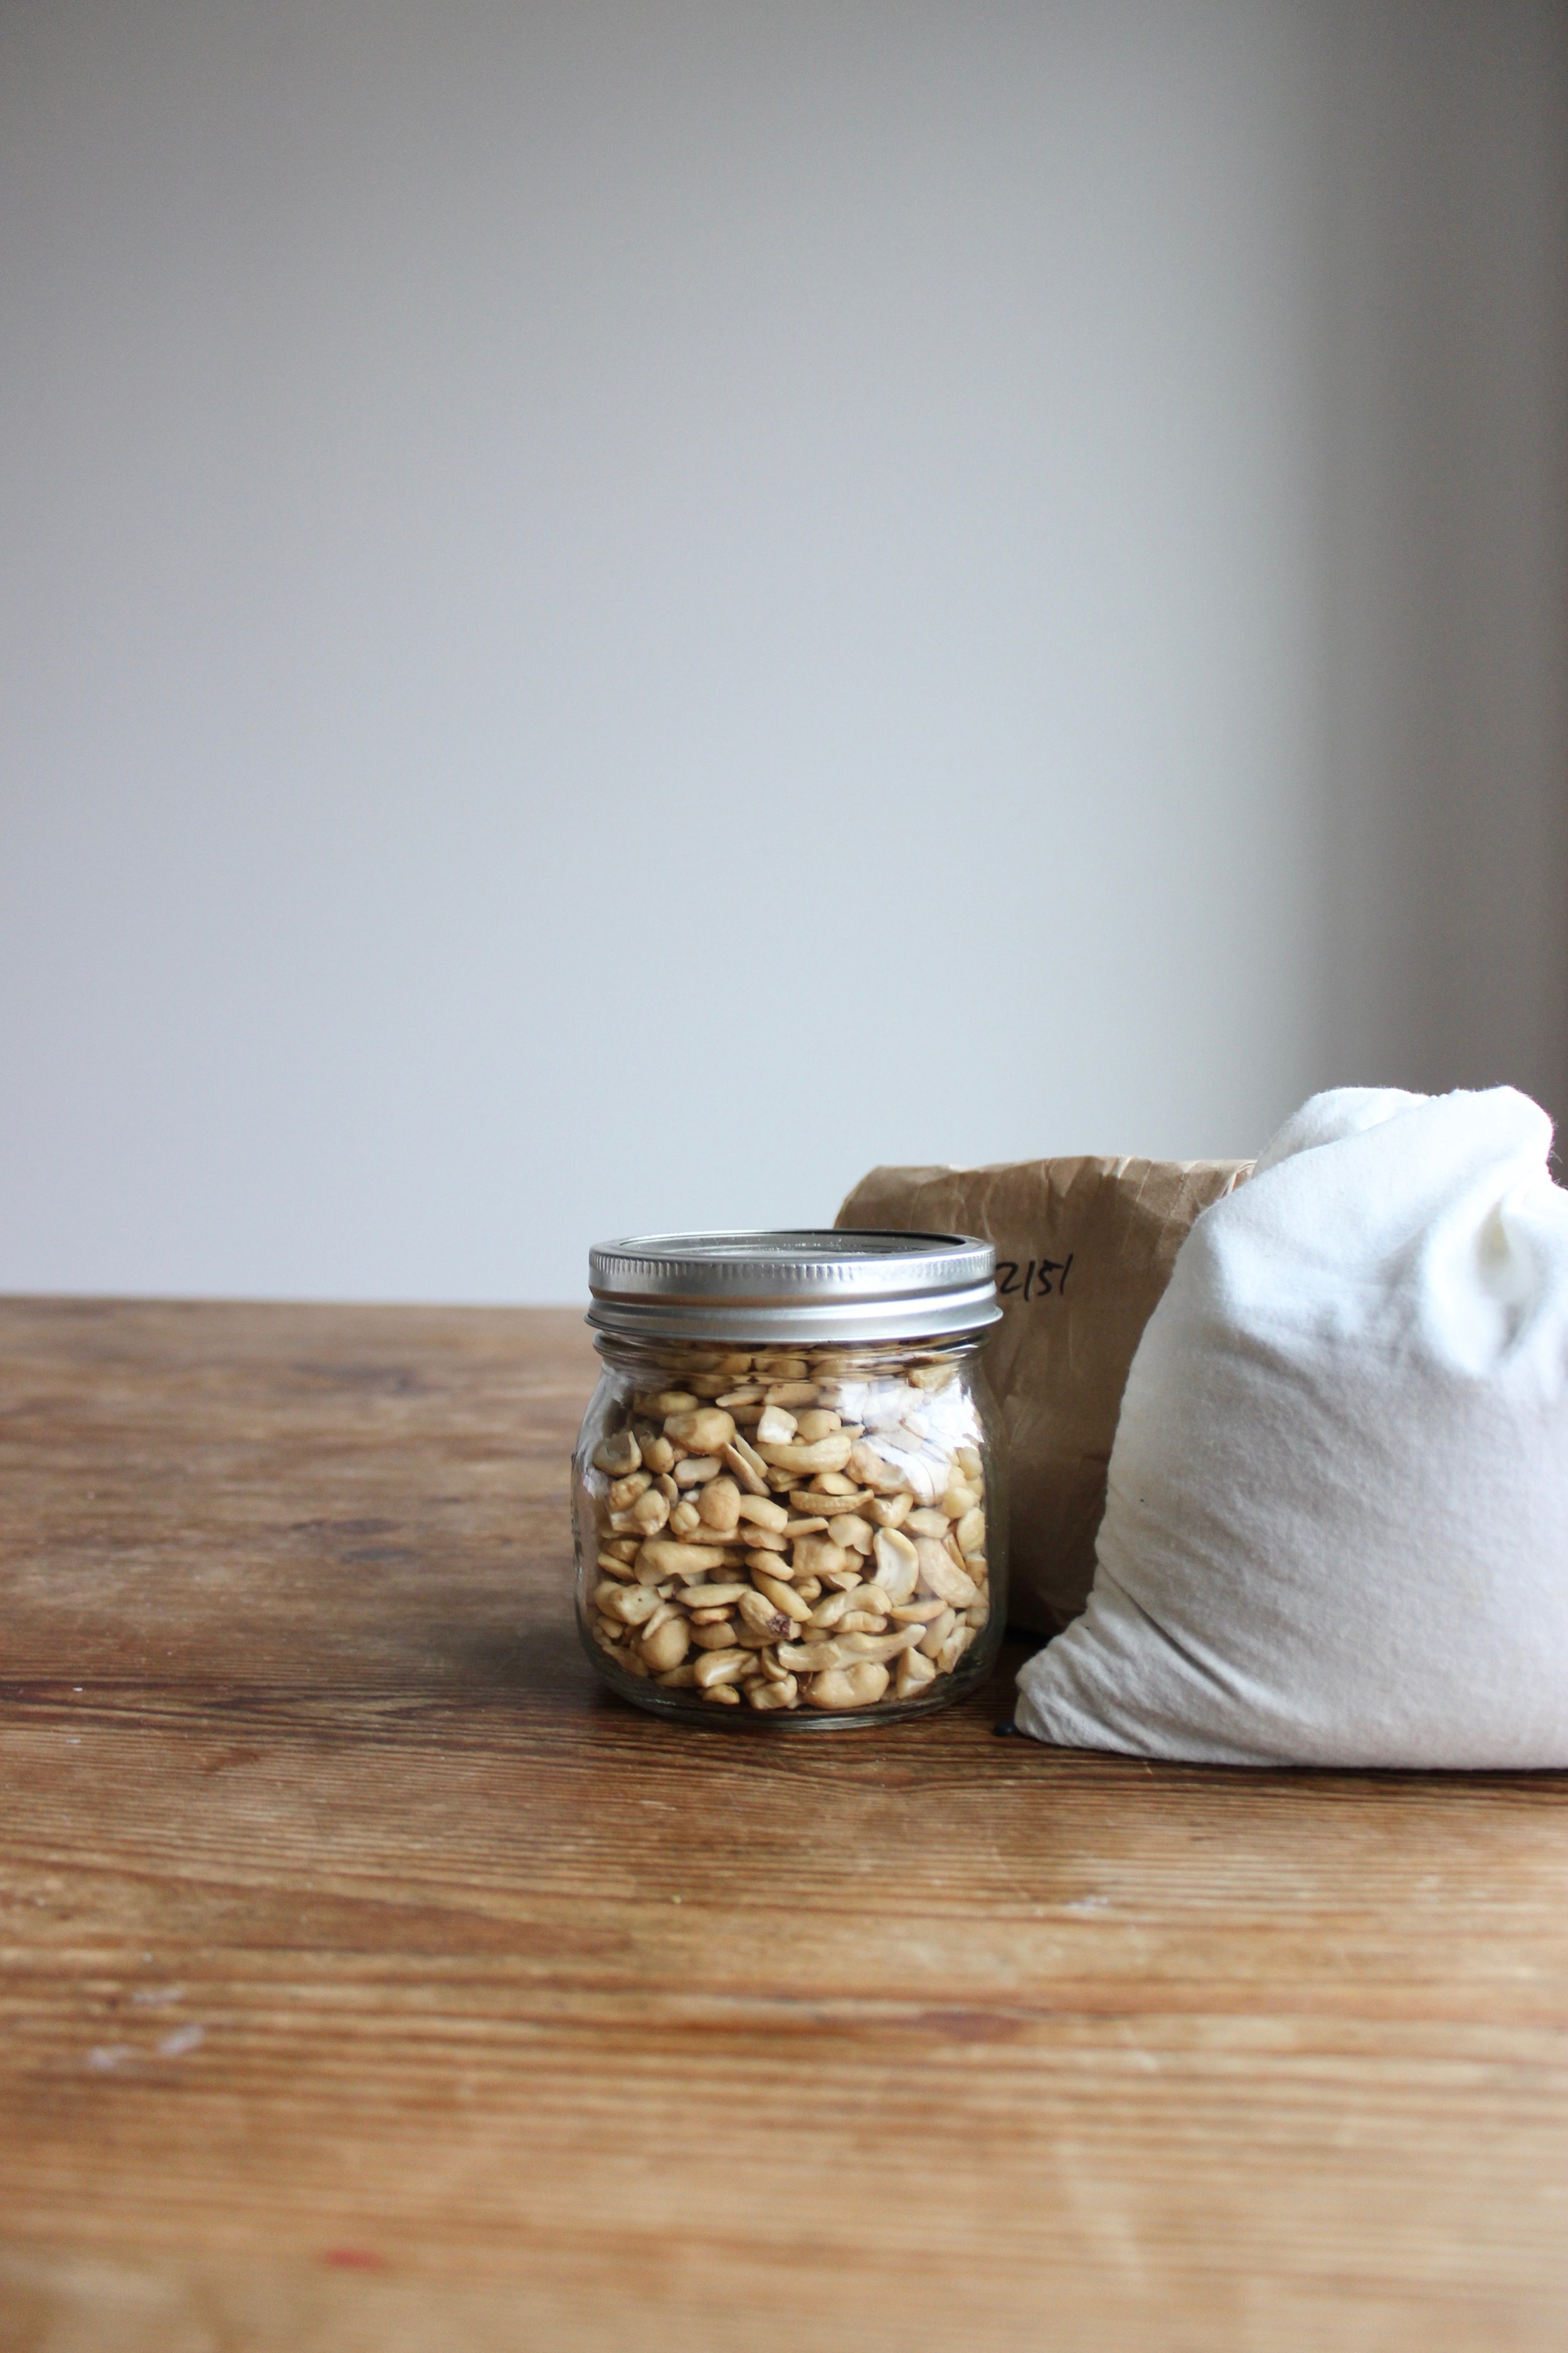 How to shop in bulk without buying anything new | Zero waste kitchen and pantry | Litterless